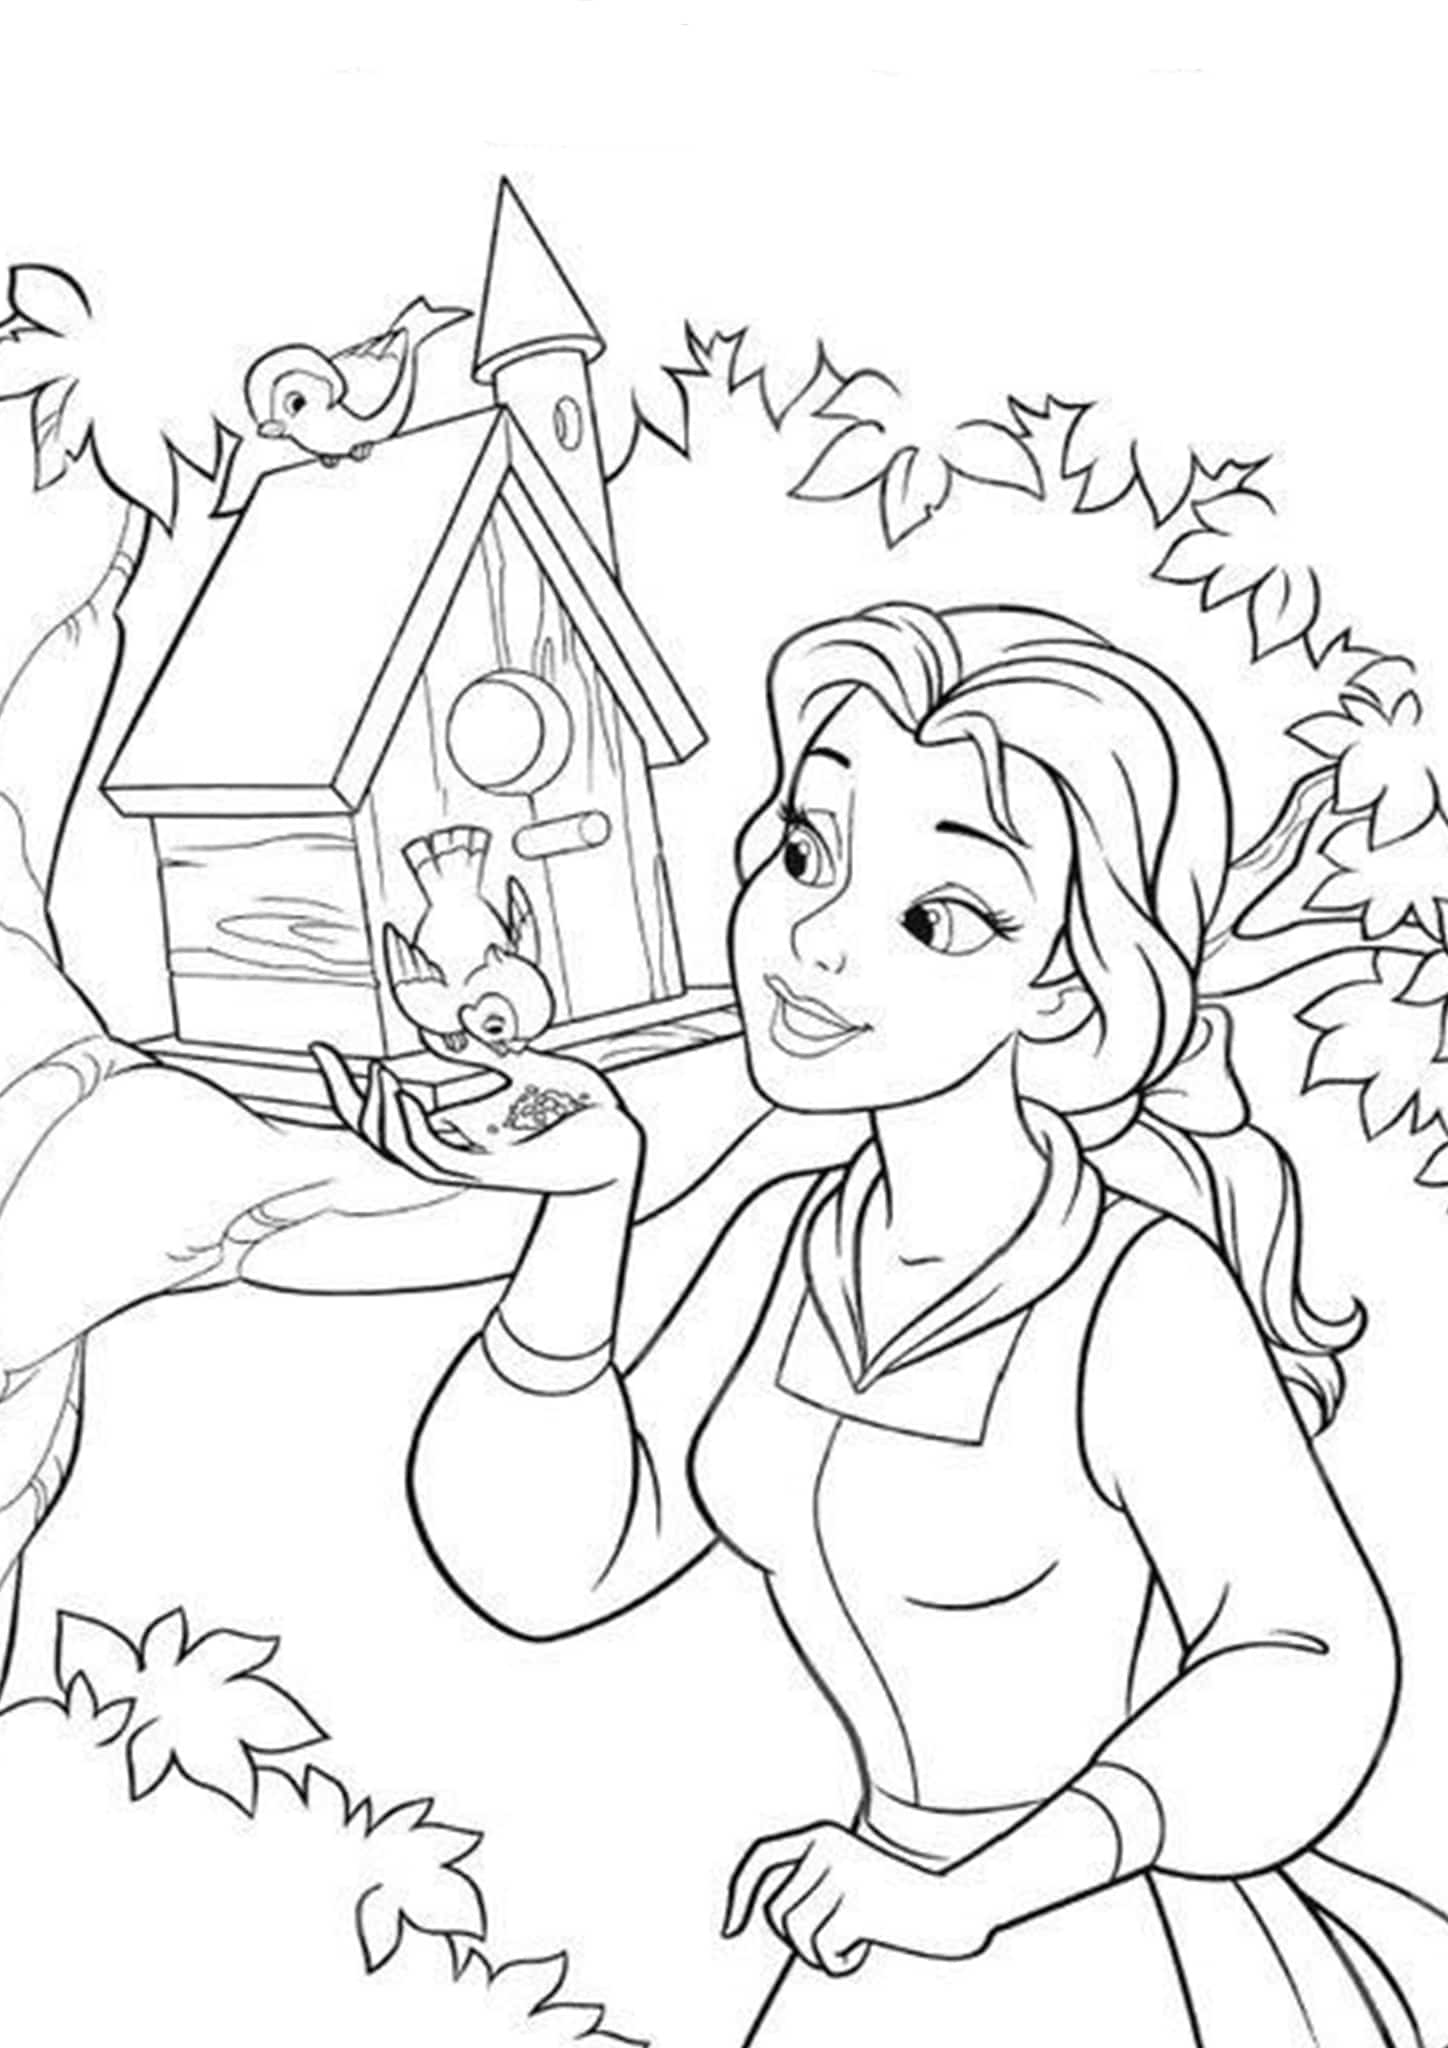 beauty and the beast colouring pages disney movie princesses belle coloring pages the beast and pages colouring beauty